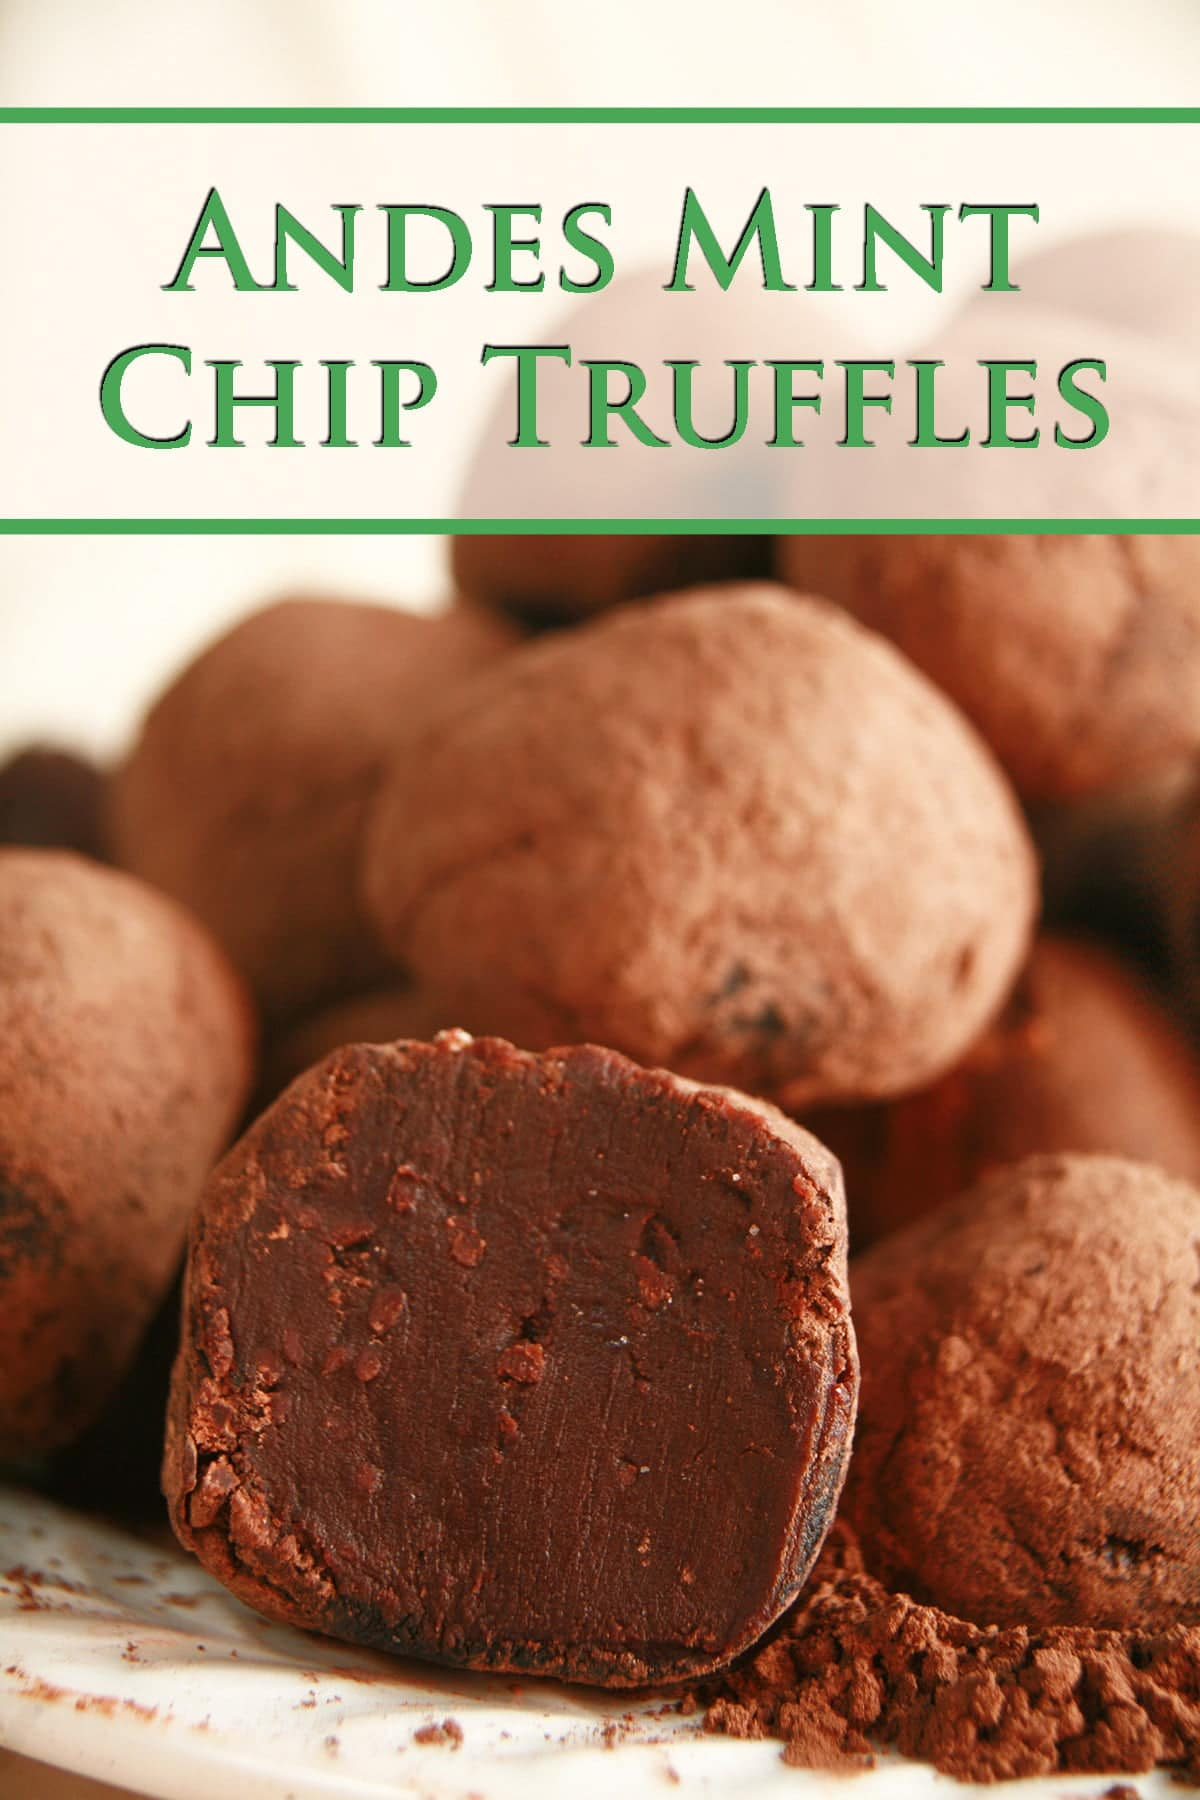 A small pile of Andes Mint Chip truffles rests atop a small mount of cocoa powder, on a small white plate.